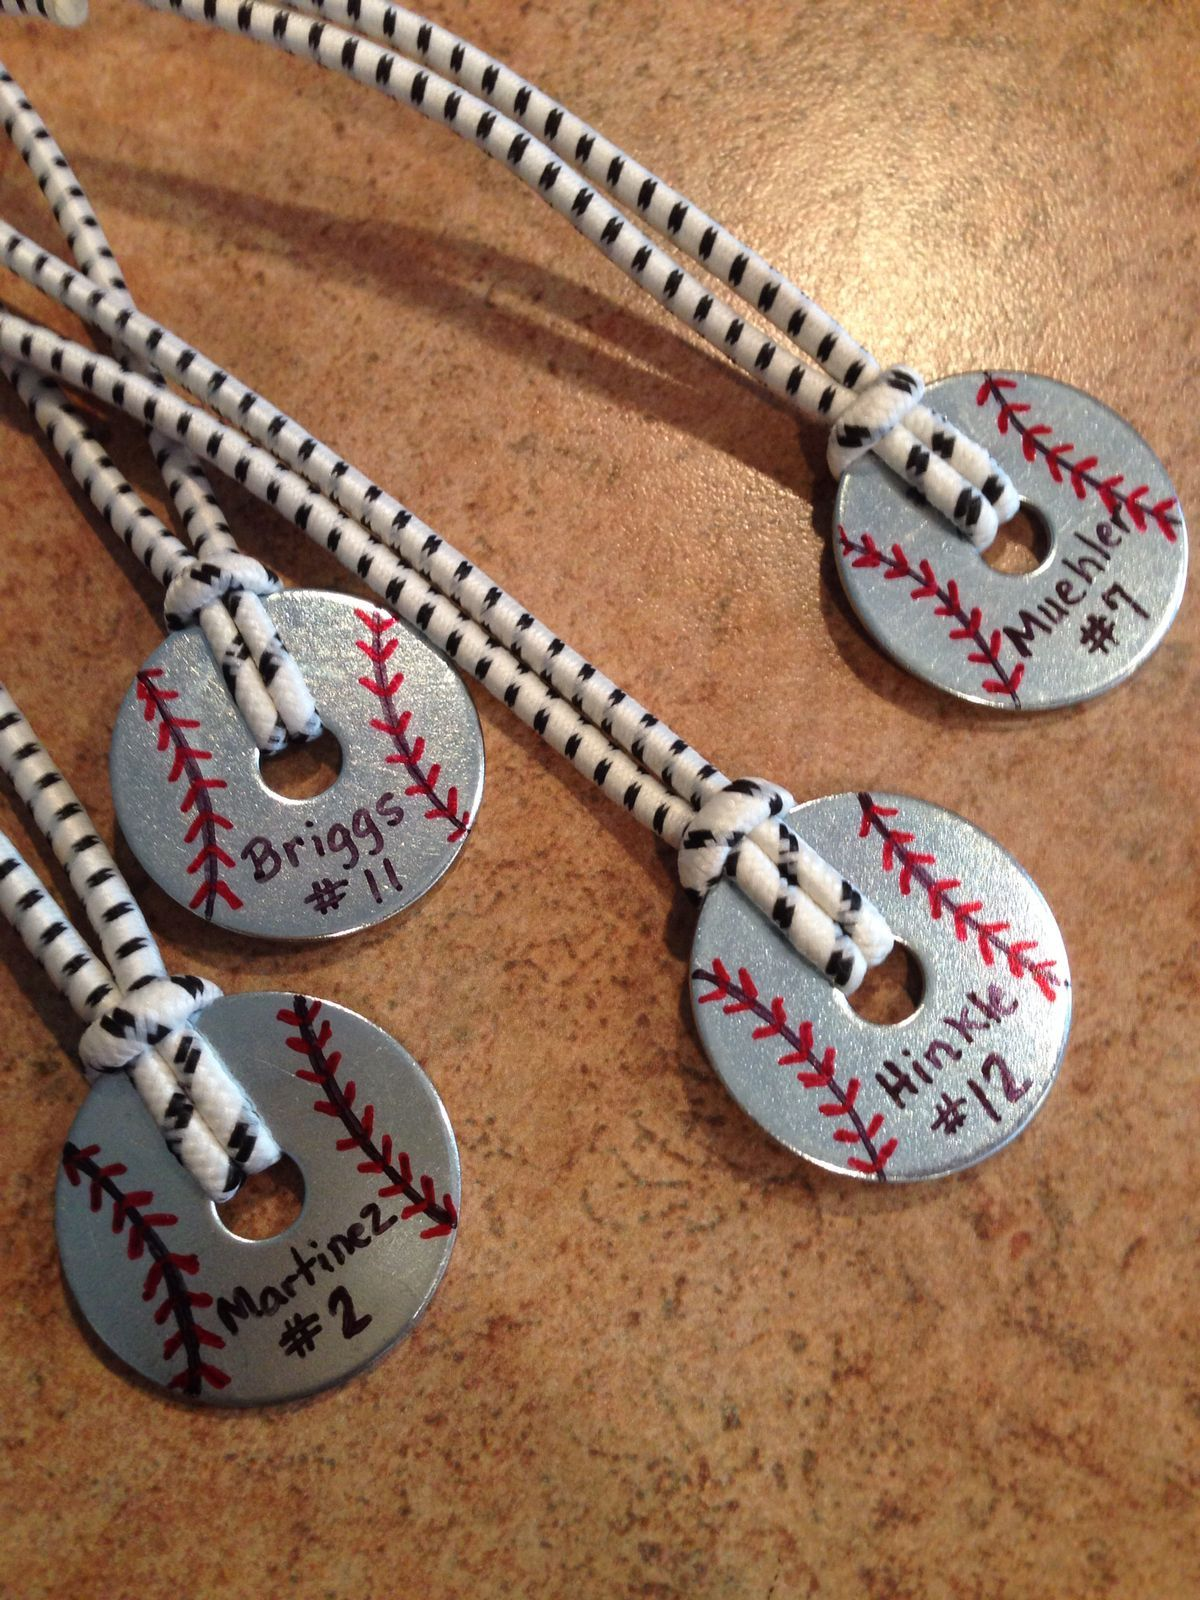 necklace ksvhs personalized men baseball soccer beautiful s sterling stamped mens hand silver